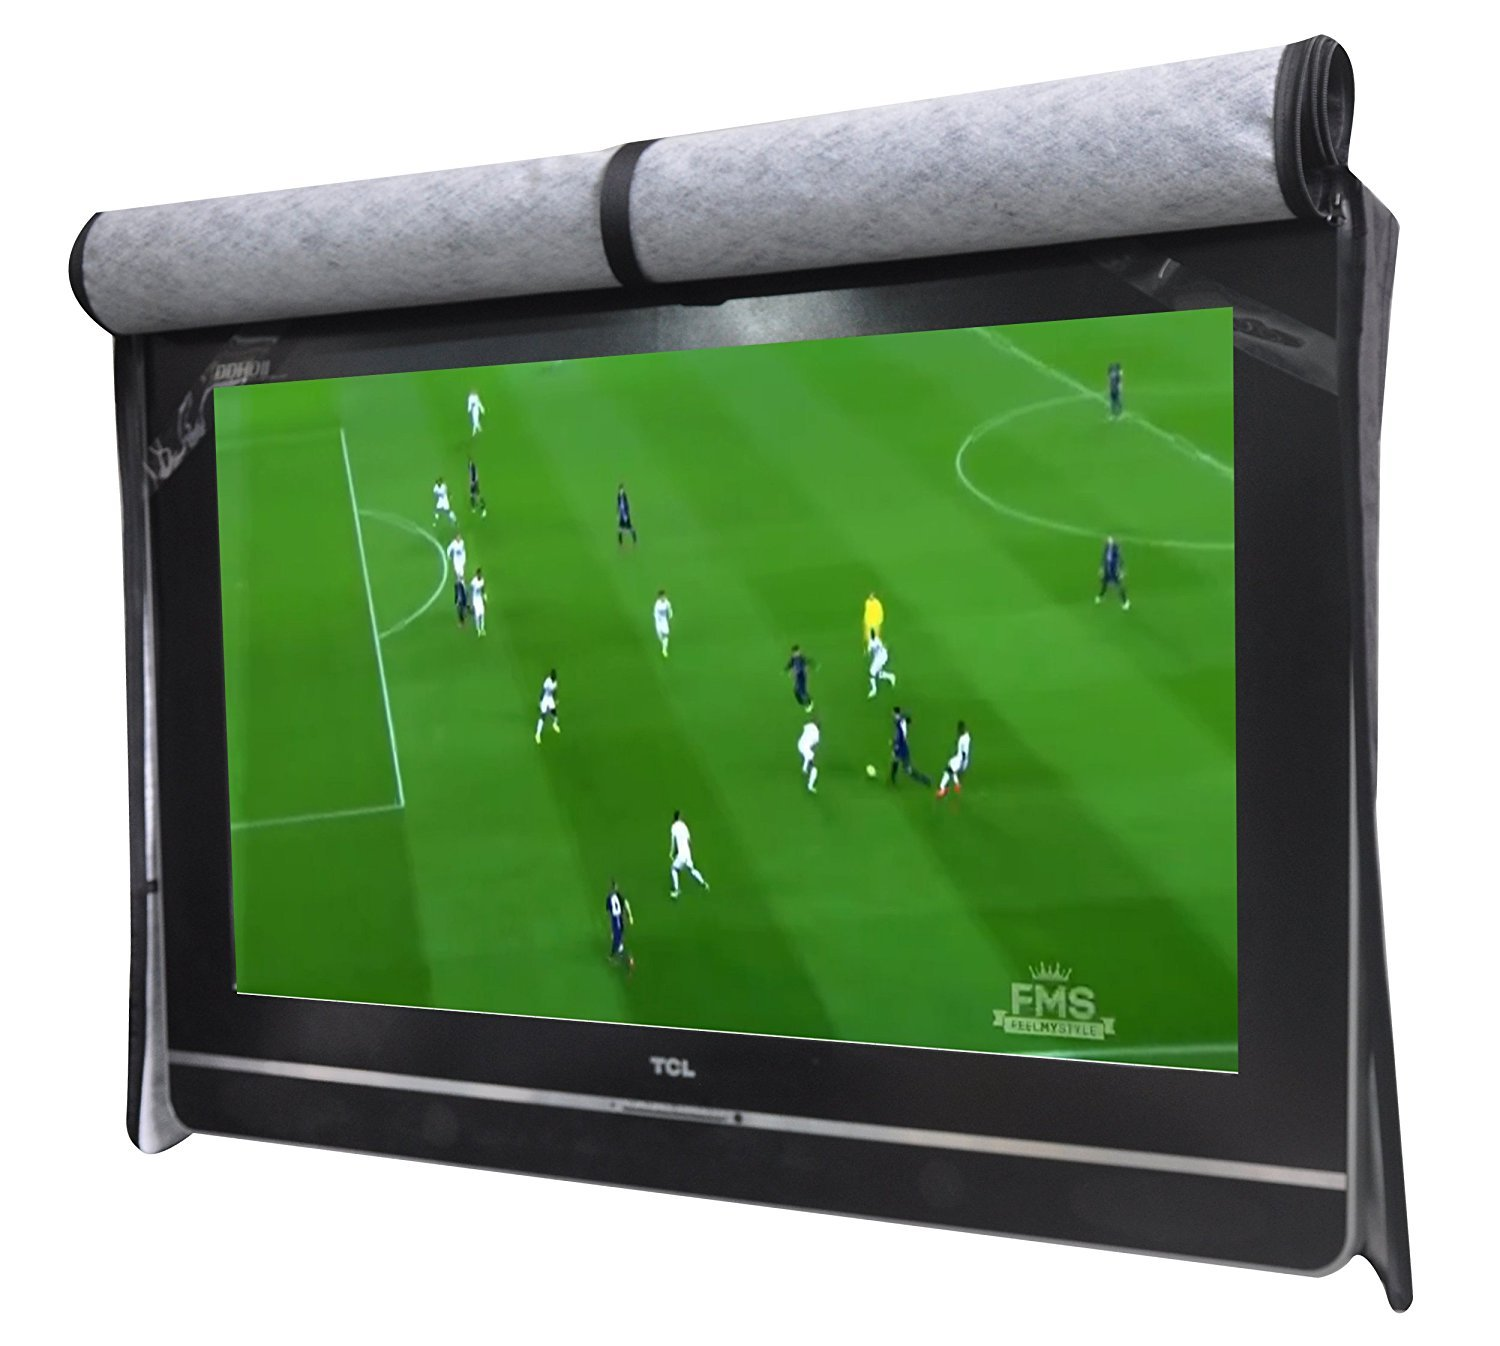 A1Cover Outdoor 50'' TV Set Cover,Scratch Resistant Liner Protect LED Screen Best-Compatible with Standard Mounts and Stands (Black by acoveritt